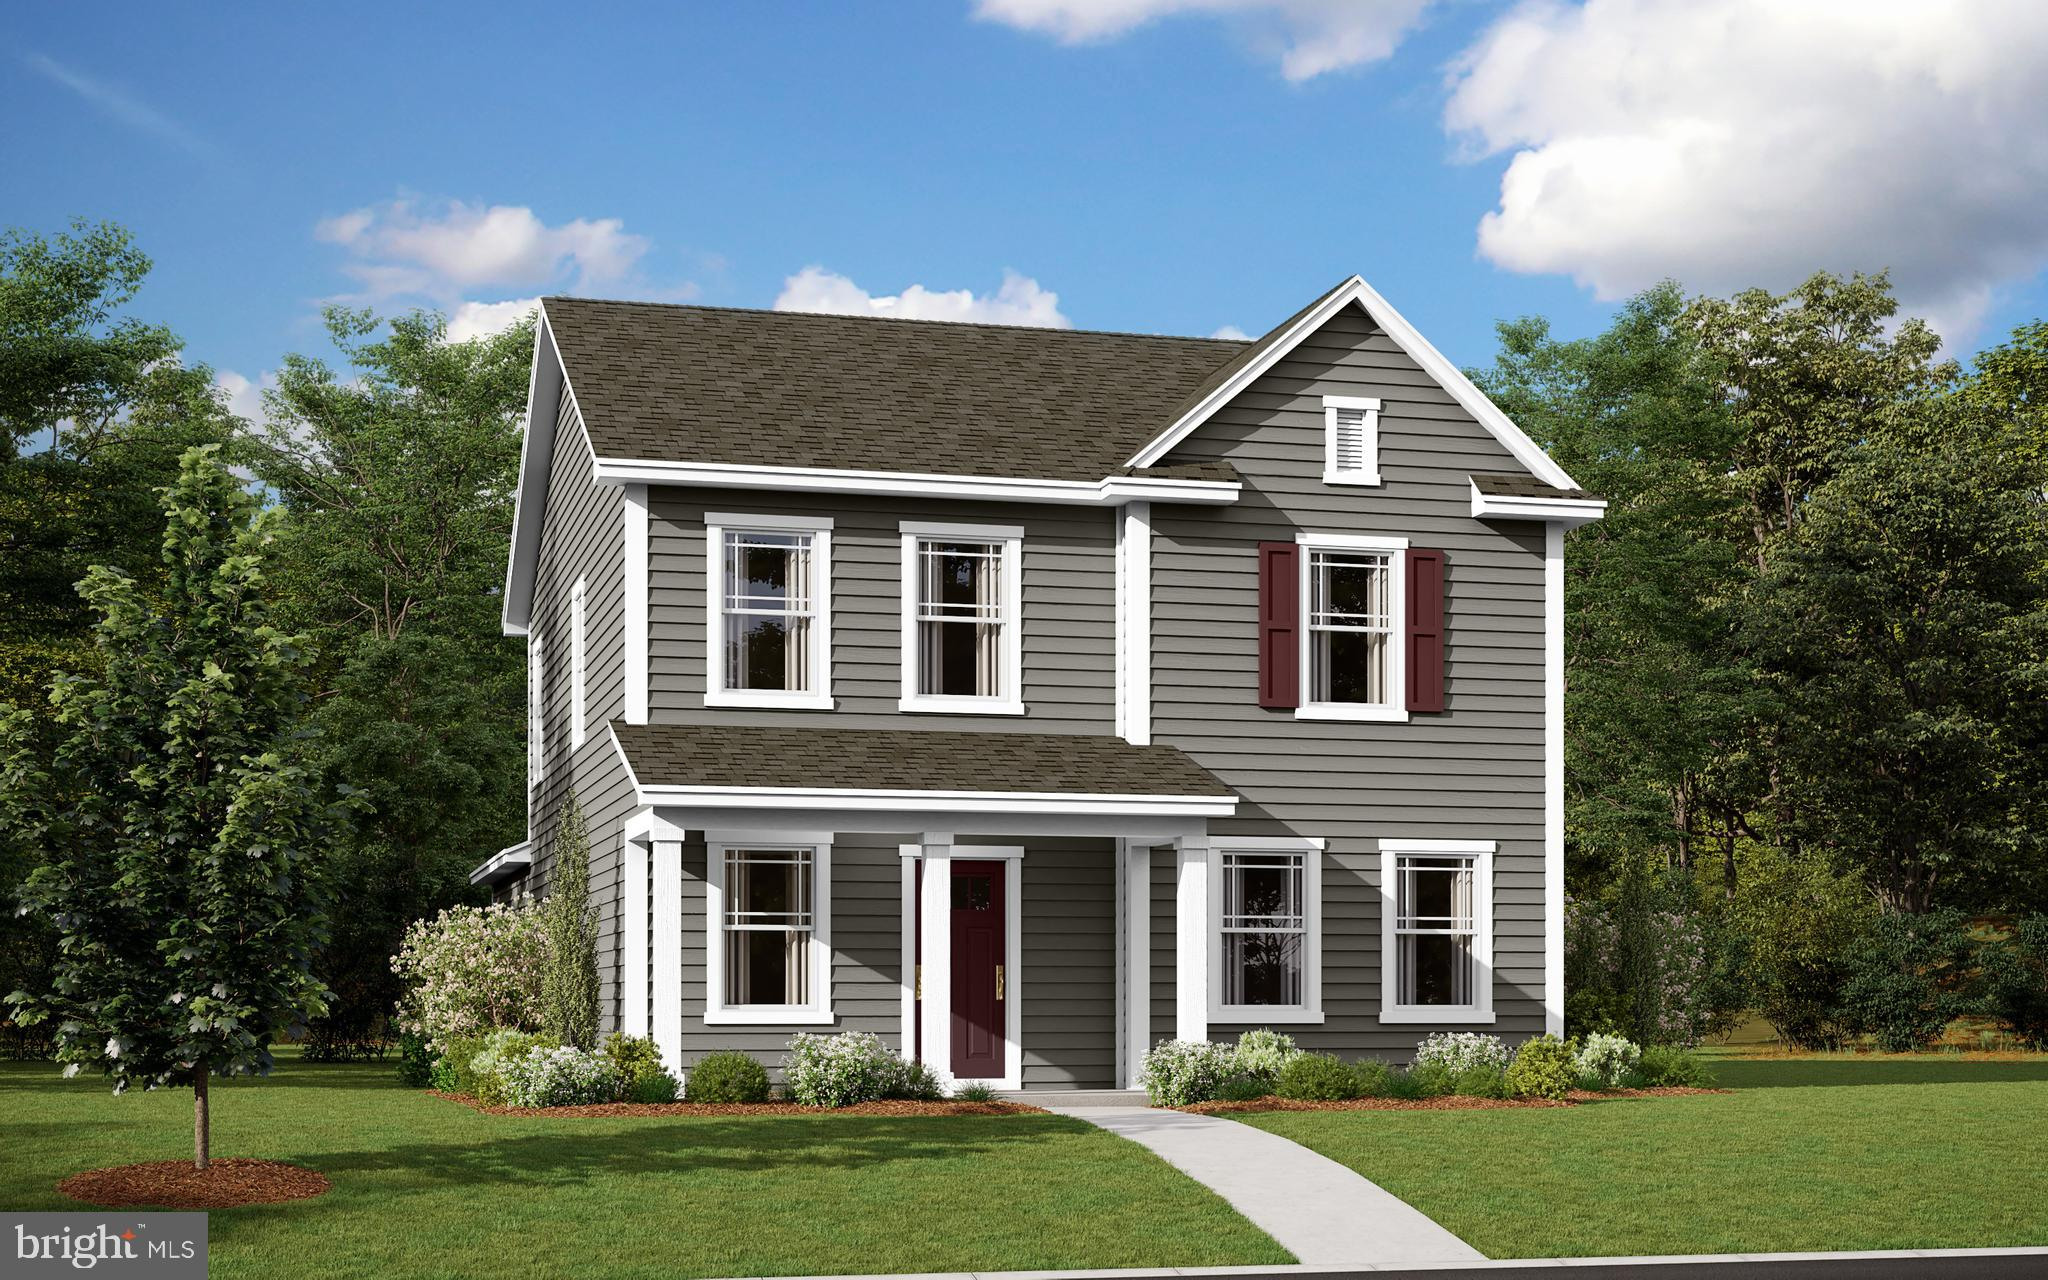 This new construction home in Milford's Simpsons Crossing neighborhood will be complete in June! A w